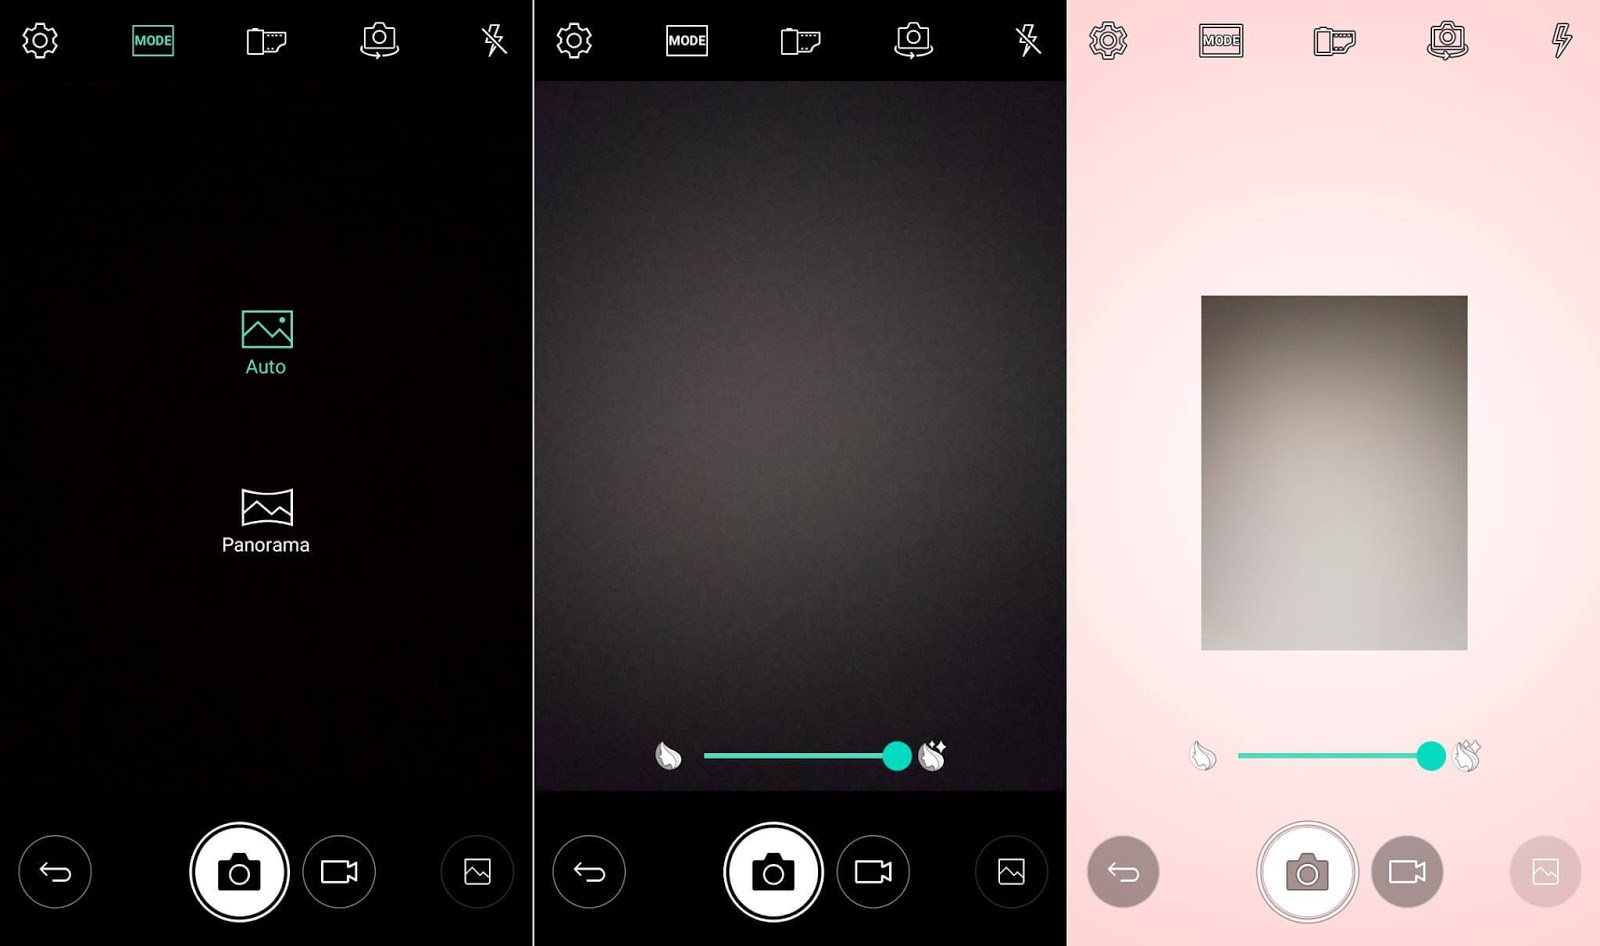 LG Stylus 3 Review - Camera Interface